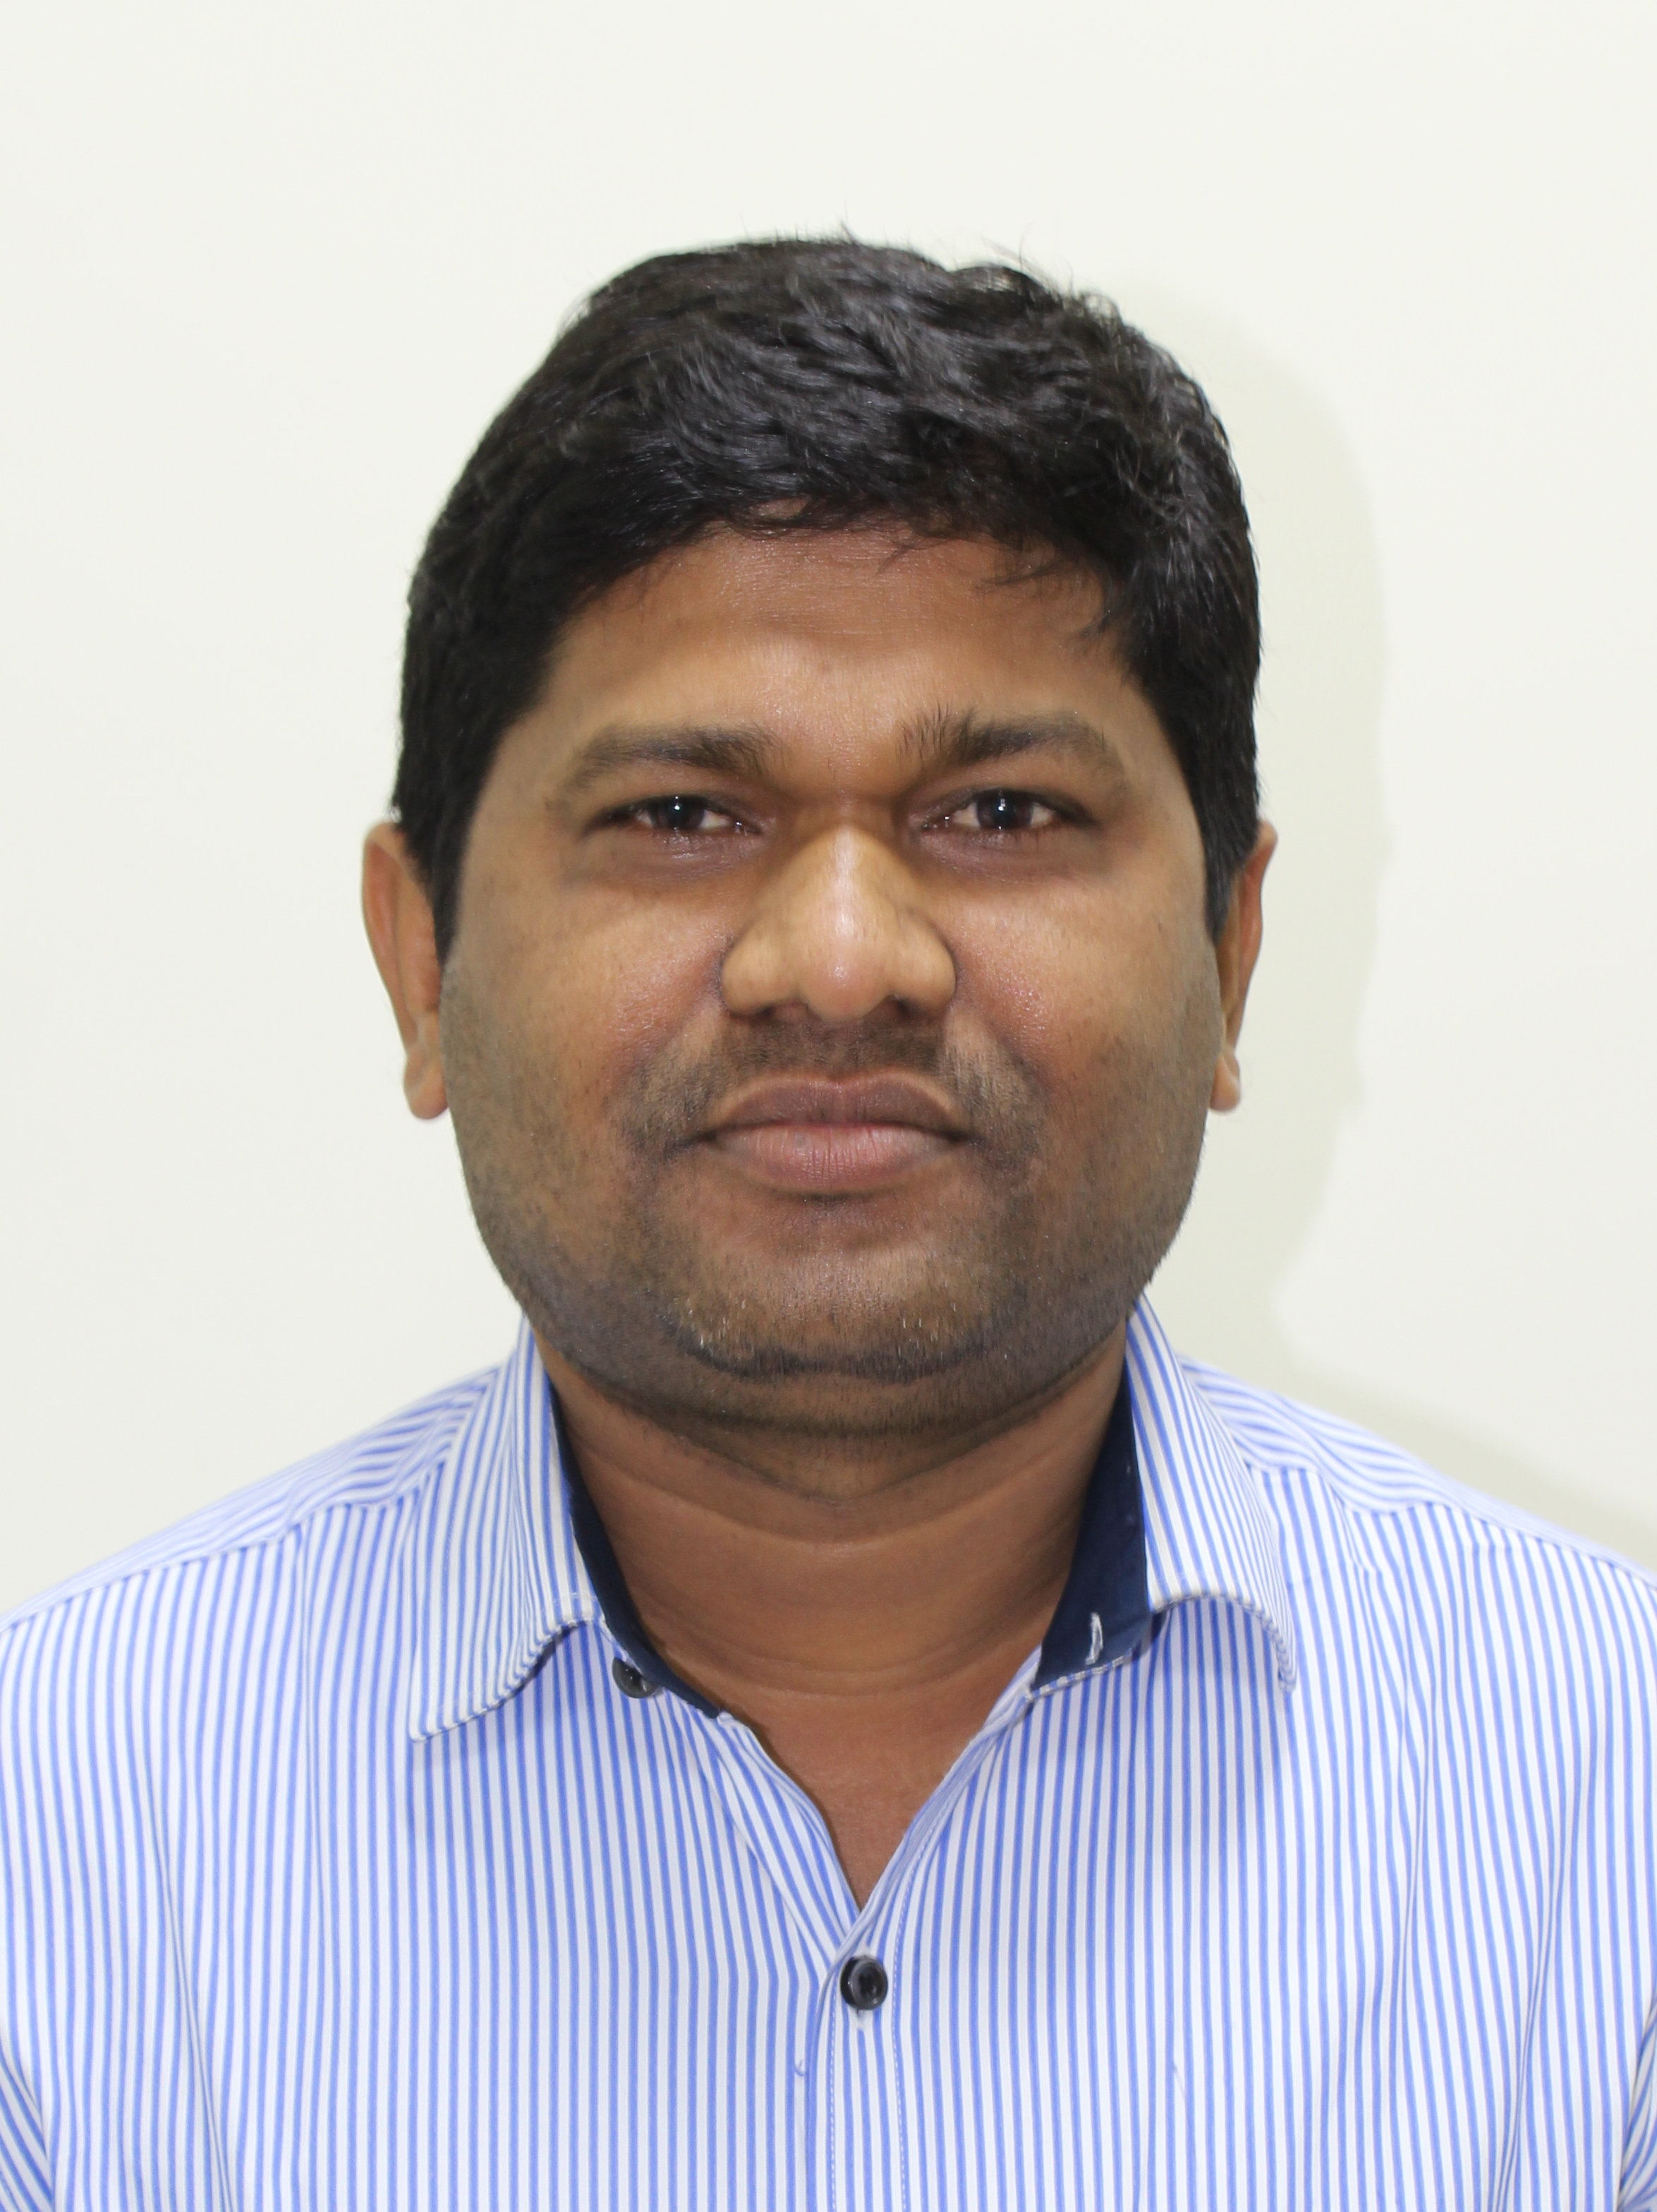 Mr. Prakash Ravi Das